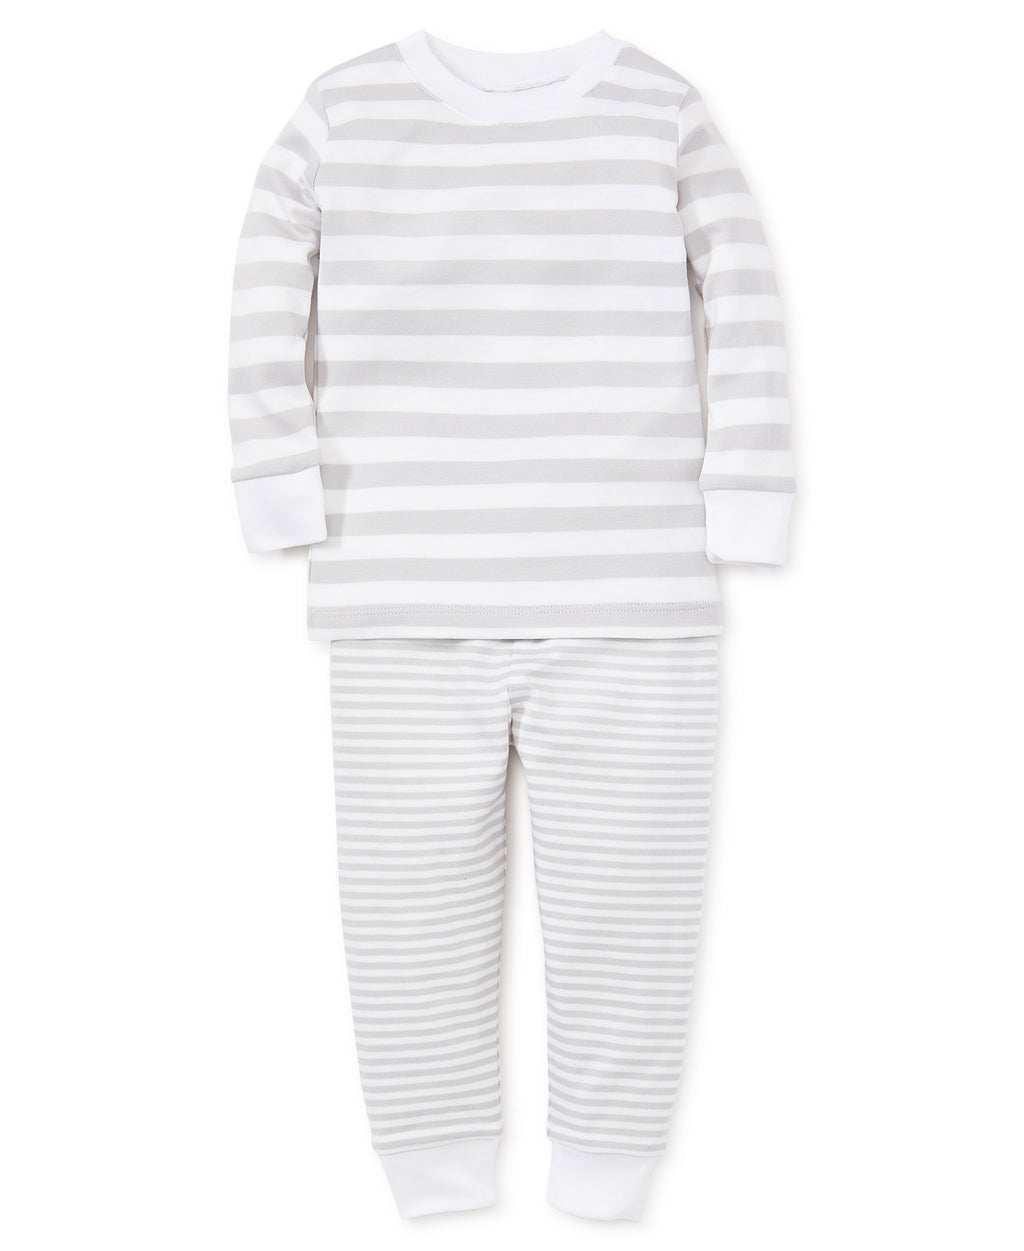 Gray Stripes Pajama Set